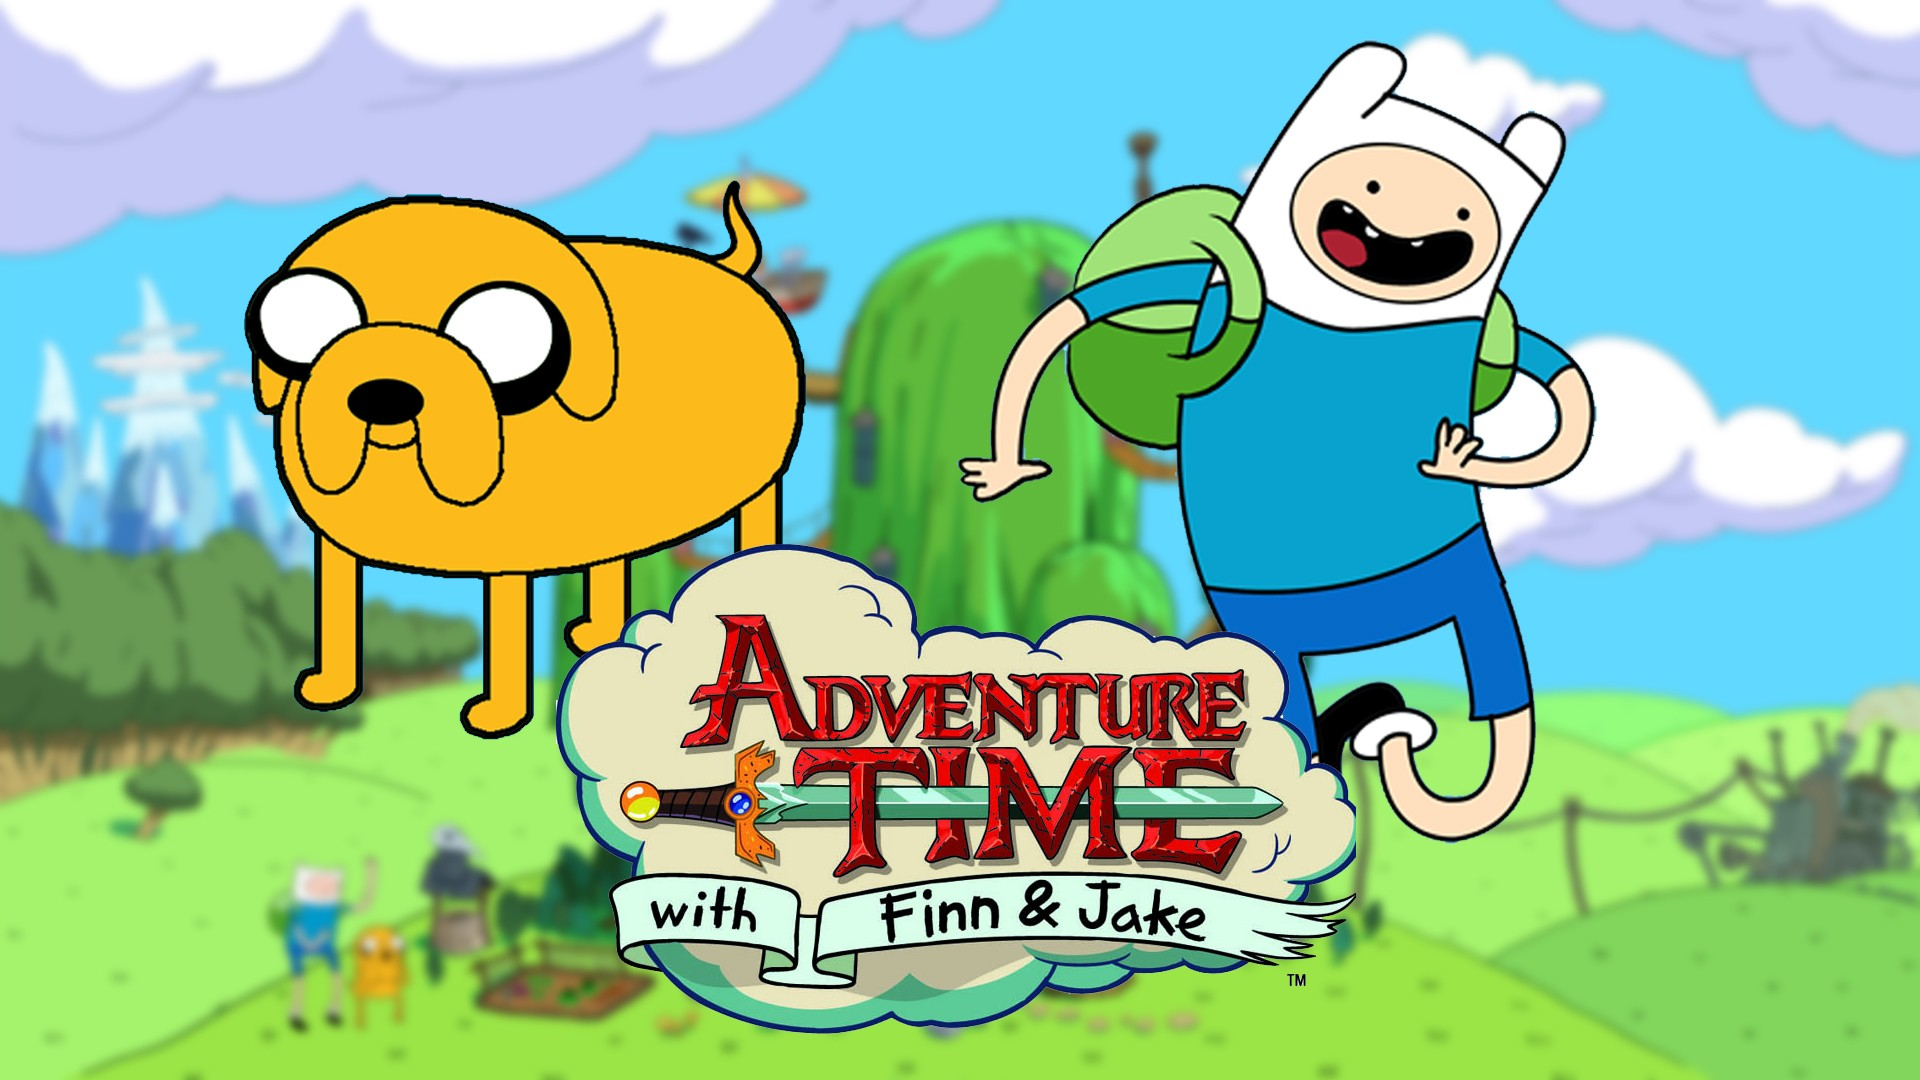 Adventure Time Wallpaper Hd (38 Wallpapers) - Adorable ...